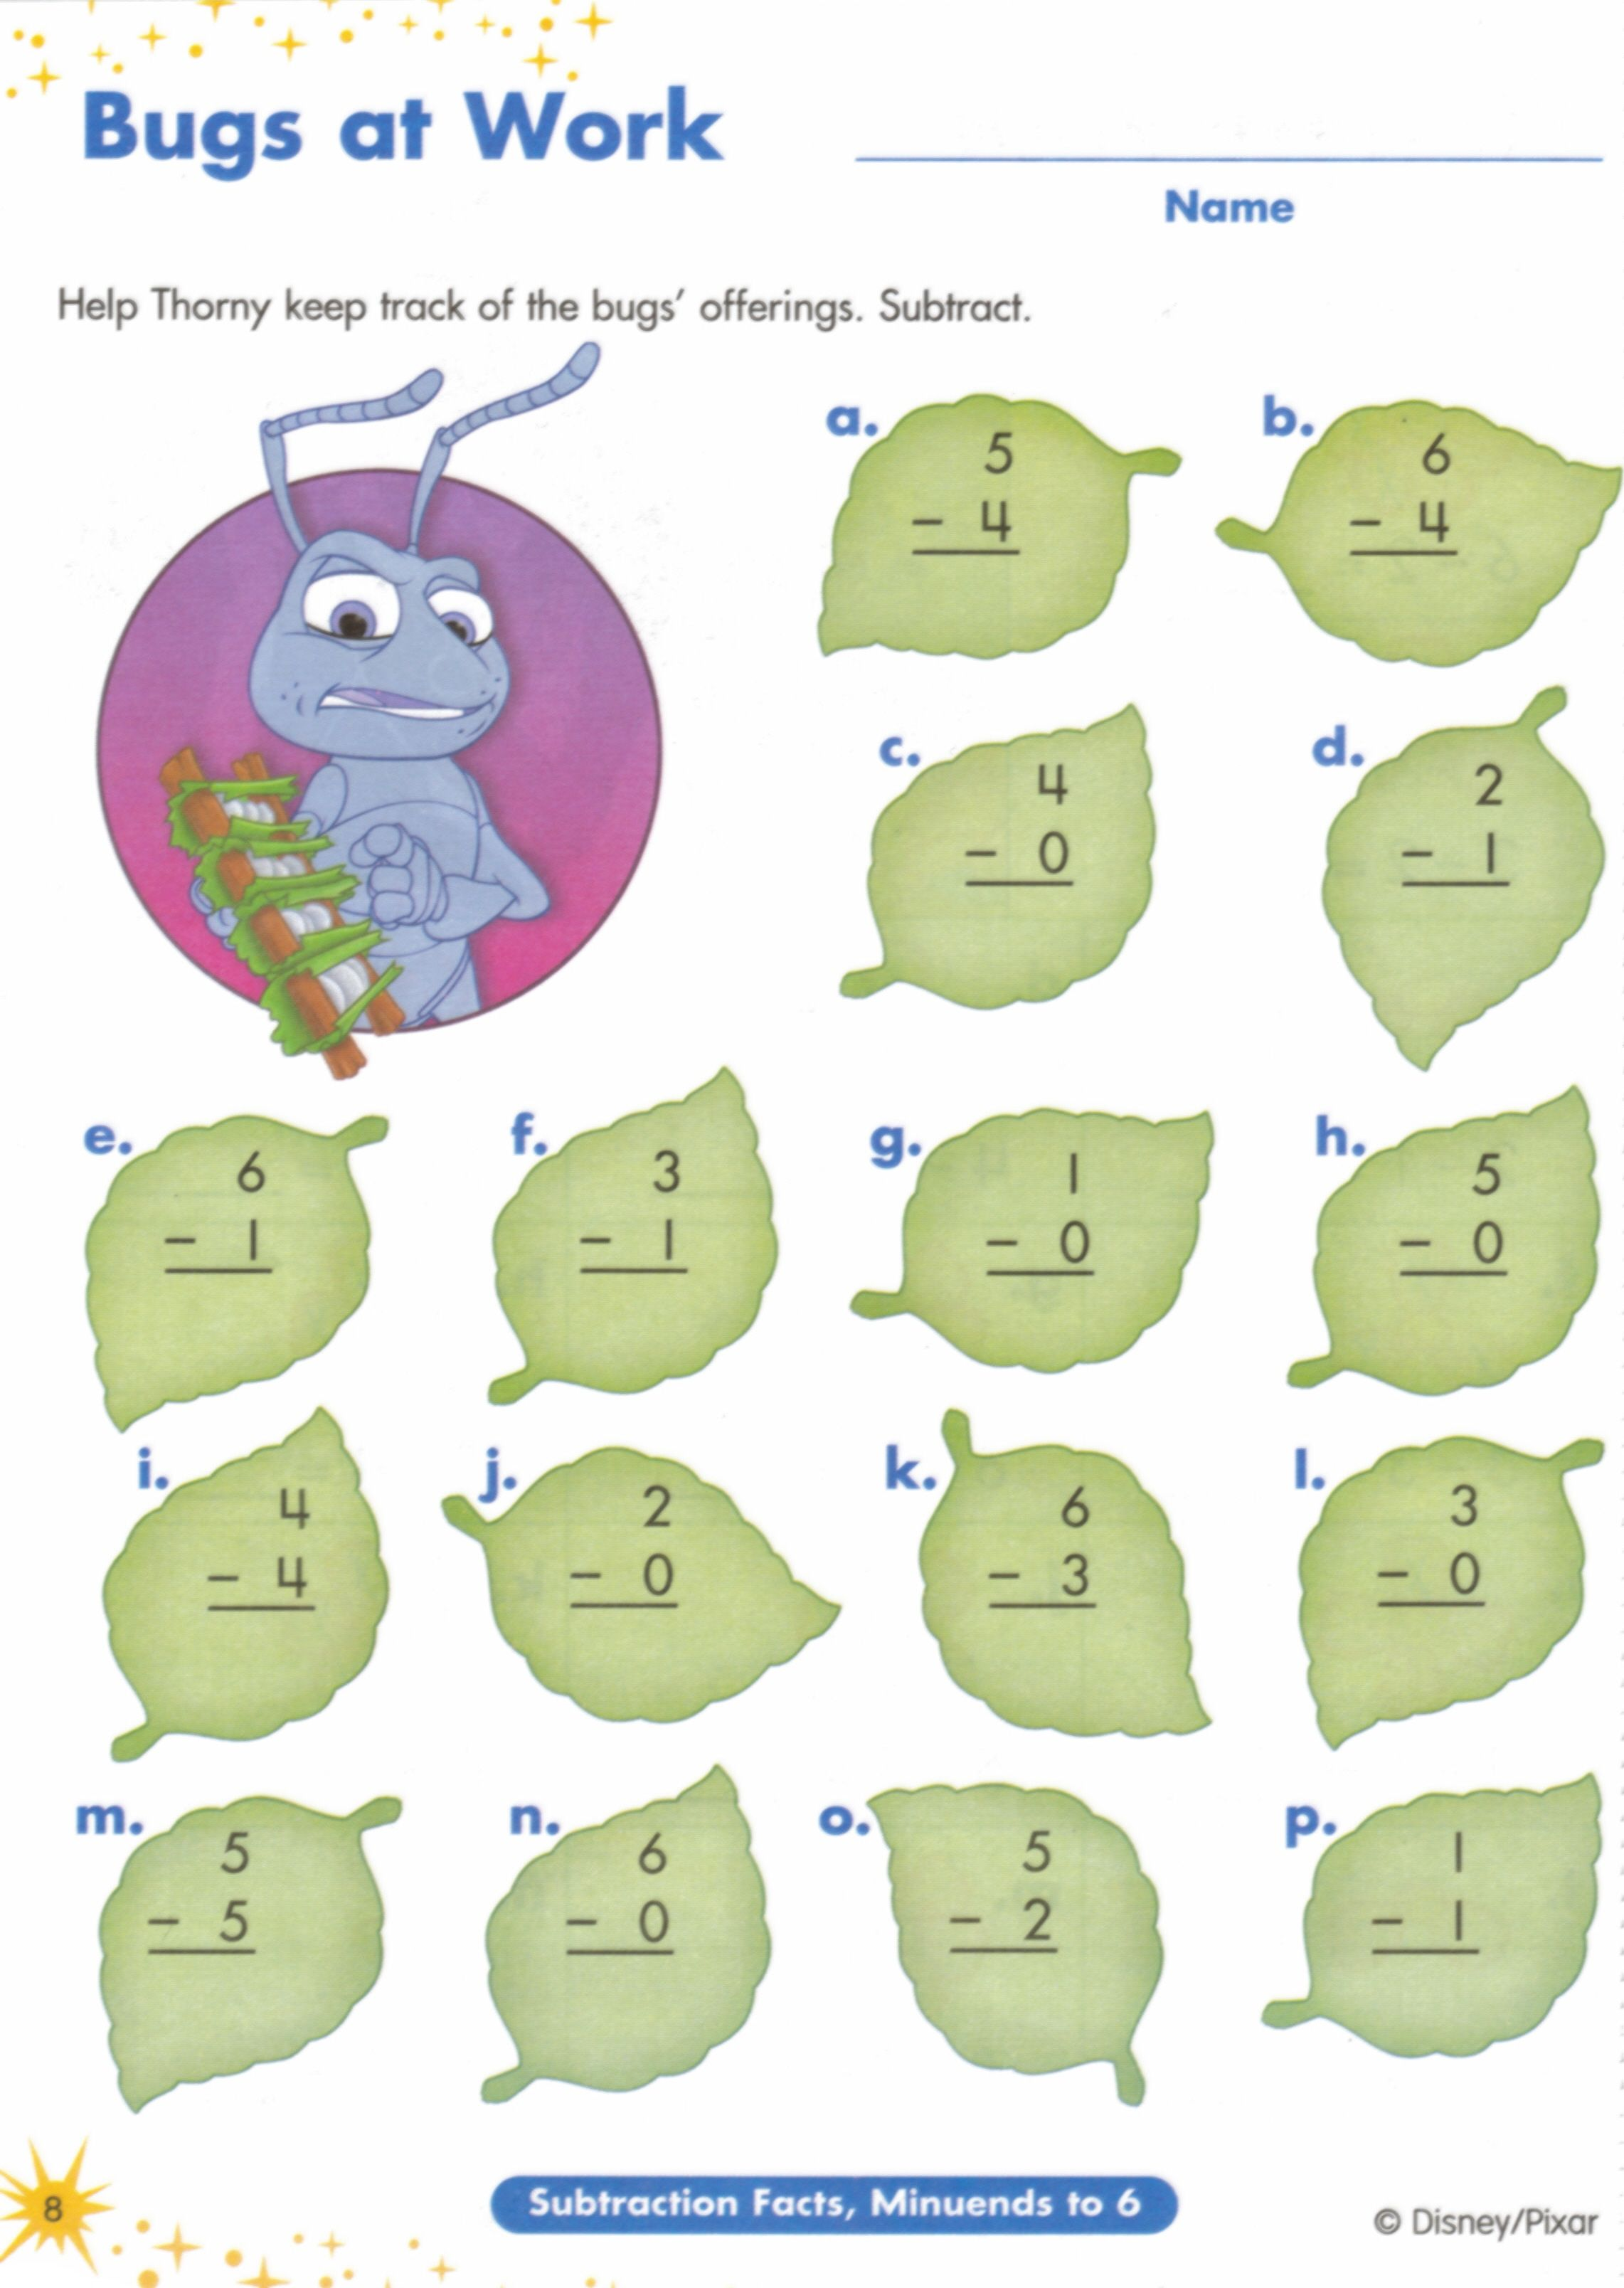 Proatmealus  Gorgeous  Images About Worksheets On Pinterest  Fun Facts For Kids  With Glamorous  Images About Worksheets On Pinterest  Fun Facts For Kids Earth Day Worksheets And Jungles With Nice Place Values Worksheets Also Fun Activity Worksheets For Middle School In Addition Free Basic Addition Worksheets And Create Sight Word Worksheets As Well As Line Segment Worksheets Th Grade Additionally Kuta Software Worksheet From Pinterestcom With Proatmealus  Glamorous  Images About Worksheets On Pinterest  Fun Facts For Kids  With Nice  Images About Worksheets On Pinterest  Fun Facts For Kids Earth Day Worksheets And Jungles And Gorgeous Place Values Worksheets Also Fun Activity Worksheets For Middle School In Addition Free Basic Addition Worksheets From Pinterestcom